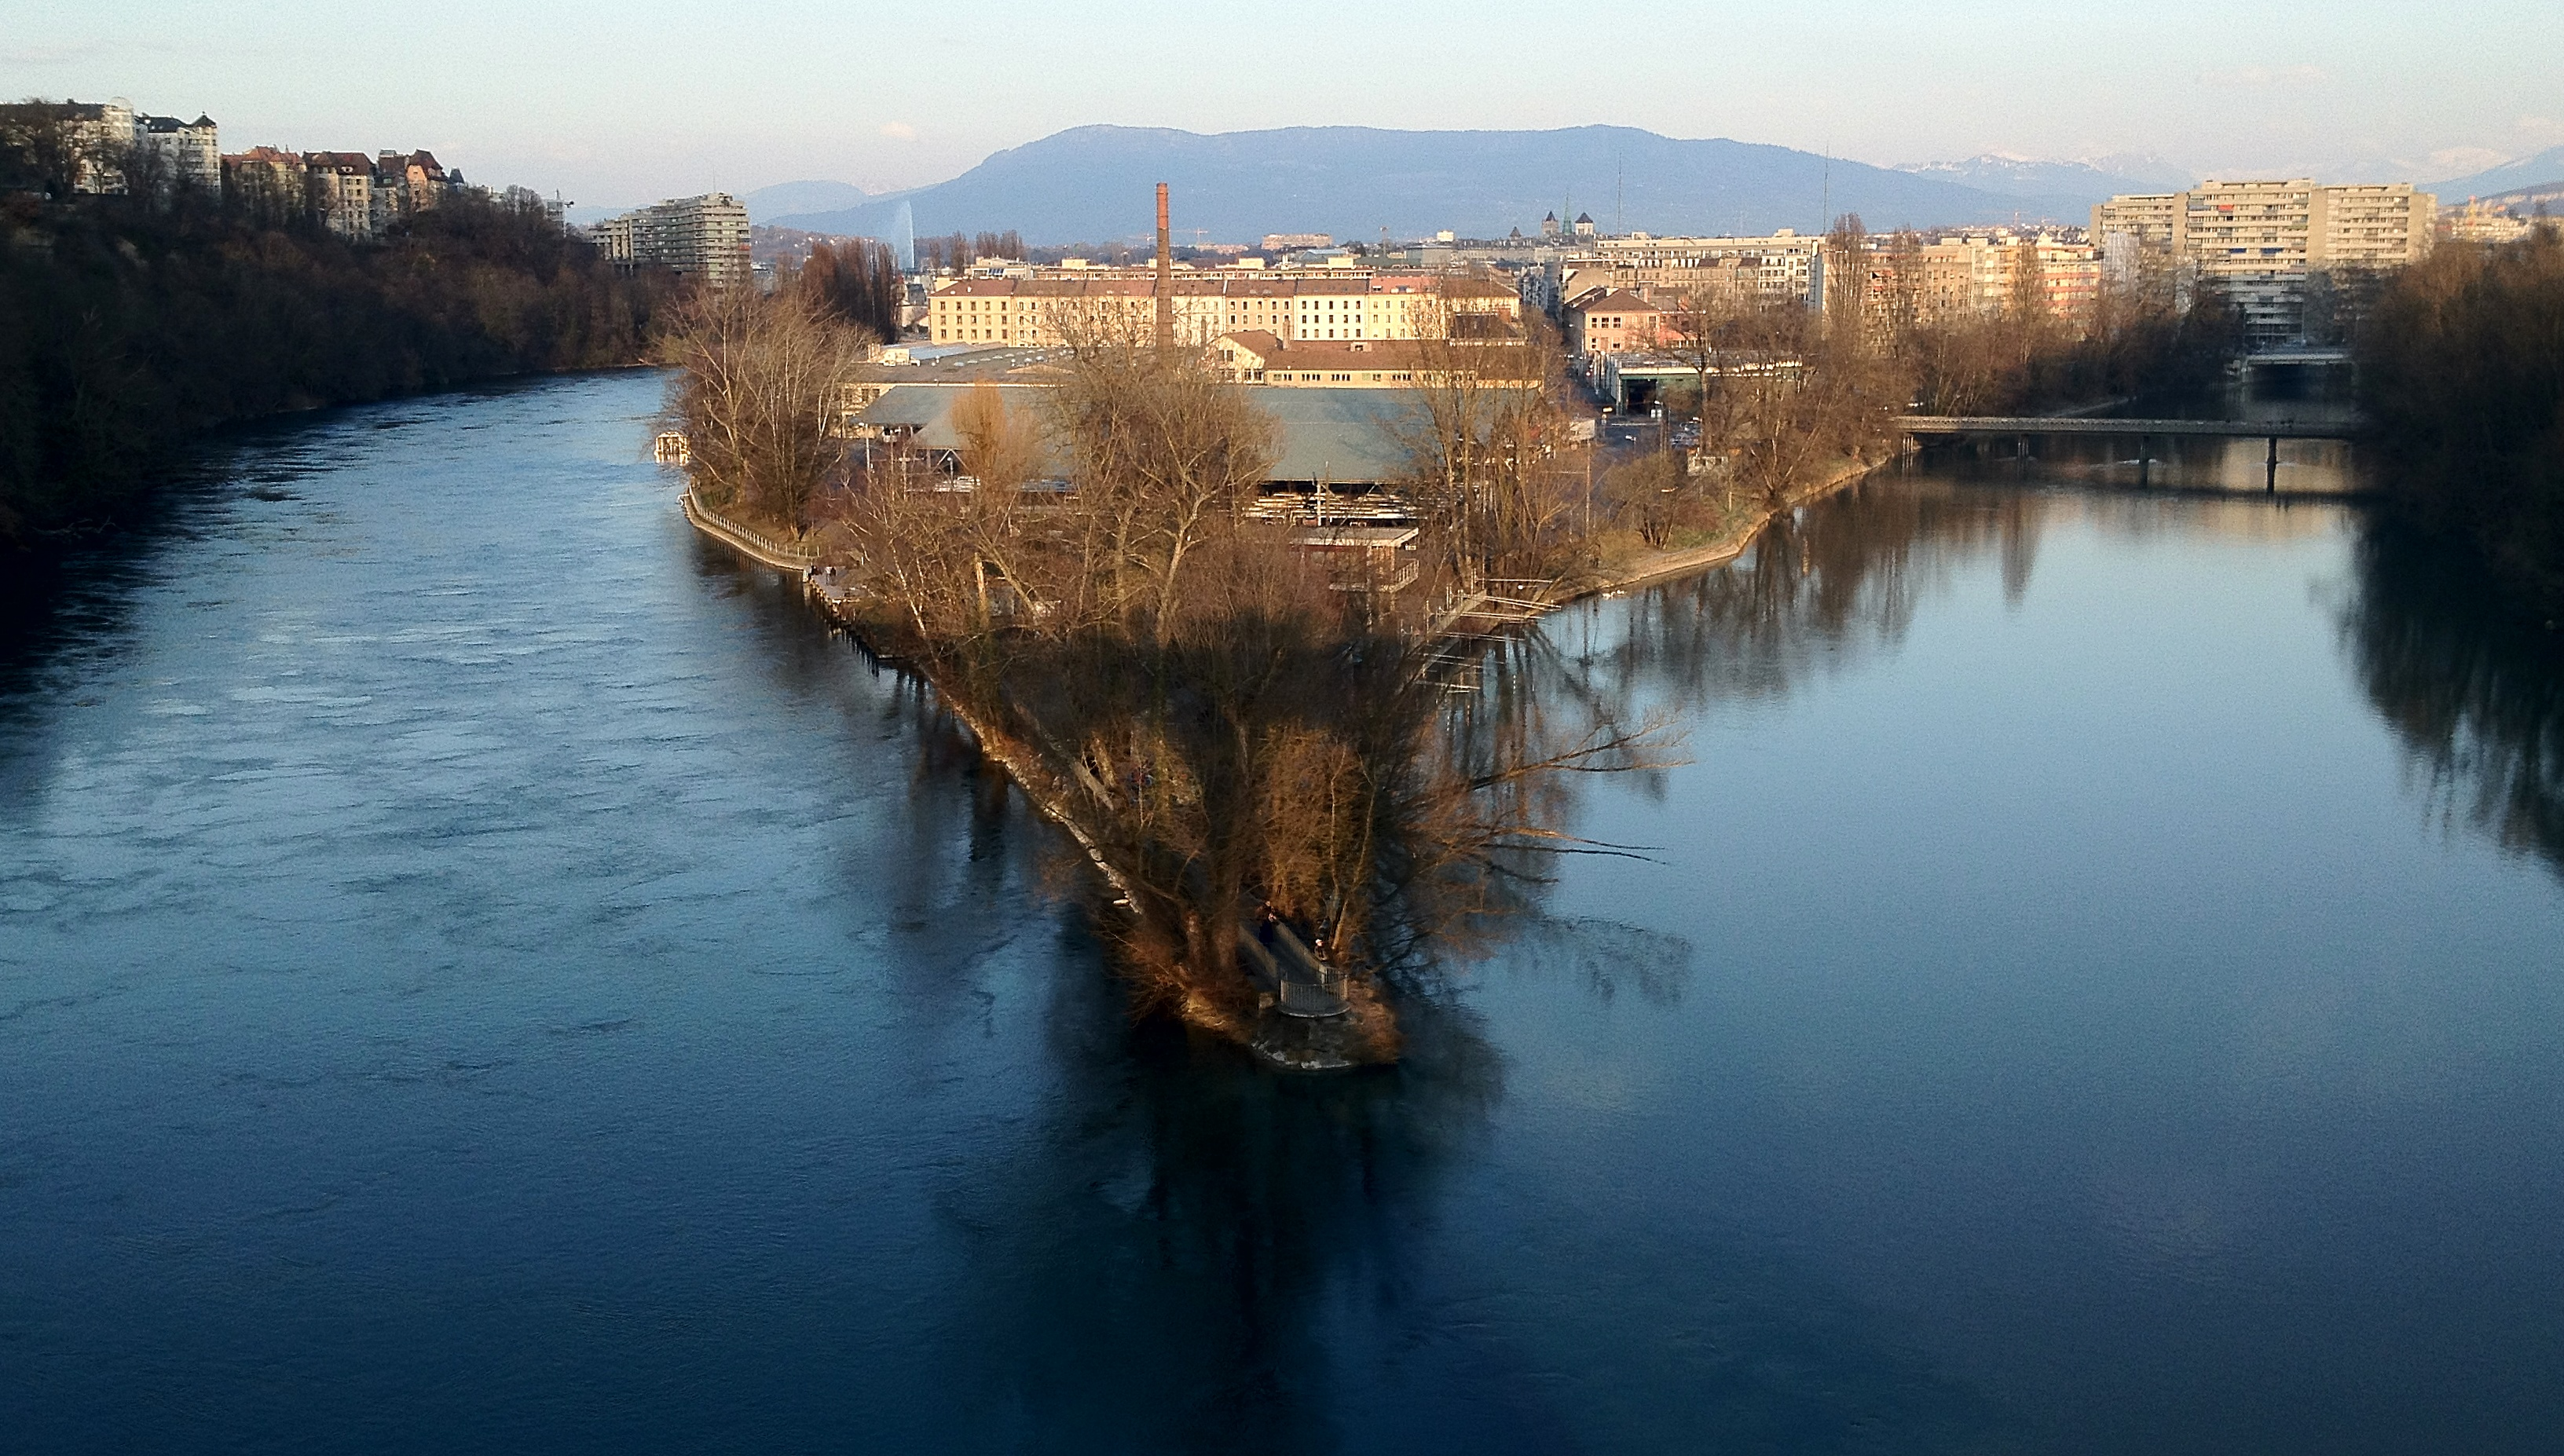 The Confluence of Rhone and Arve Rivers